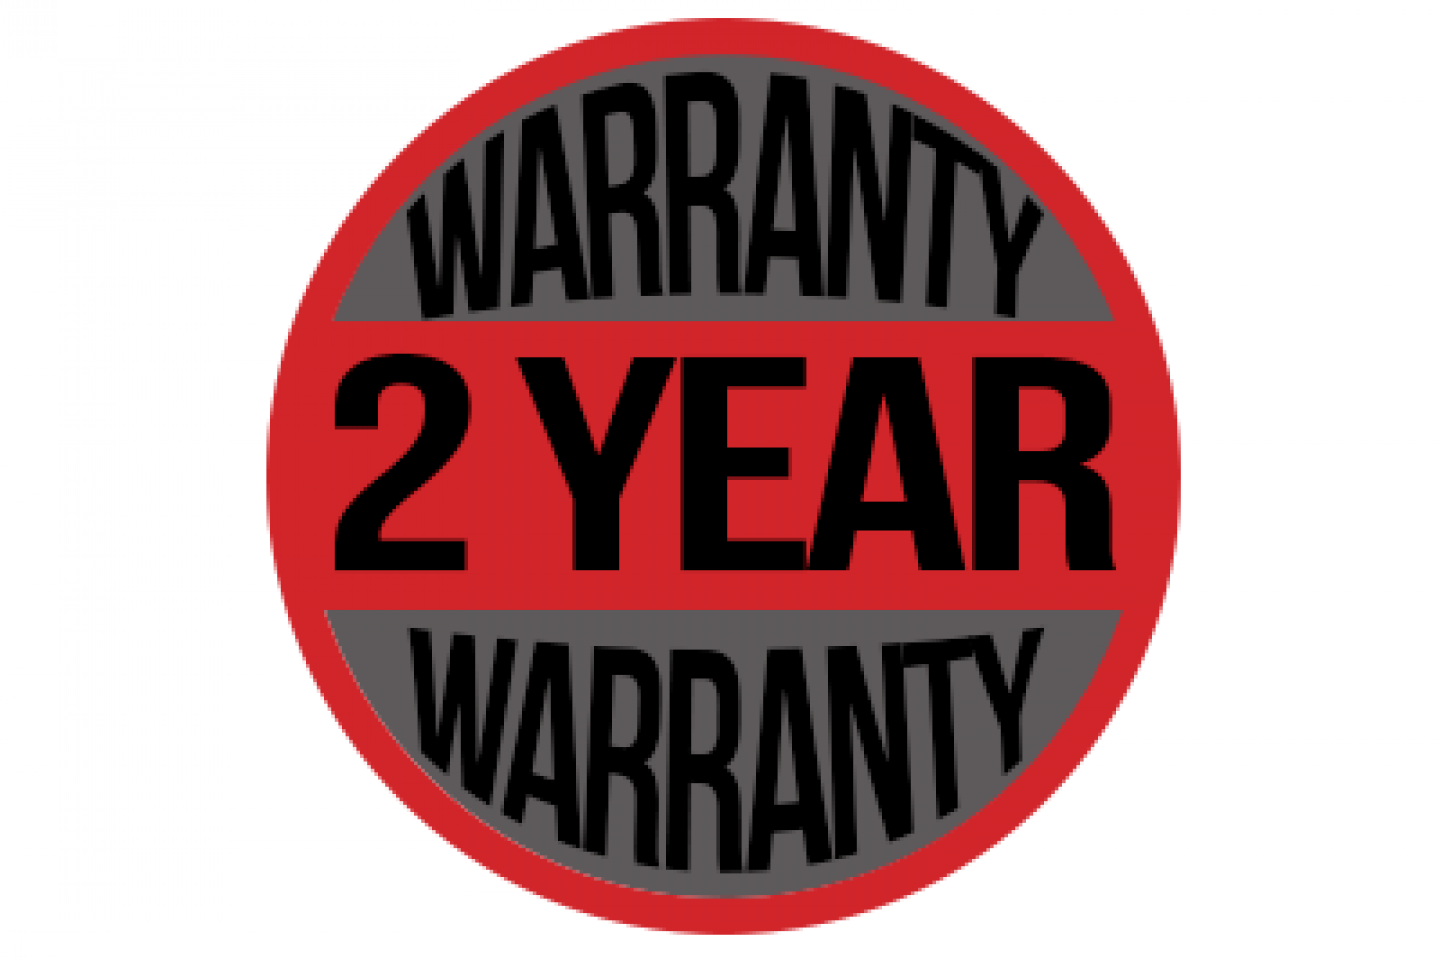 Sidler Warranty